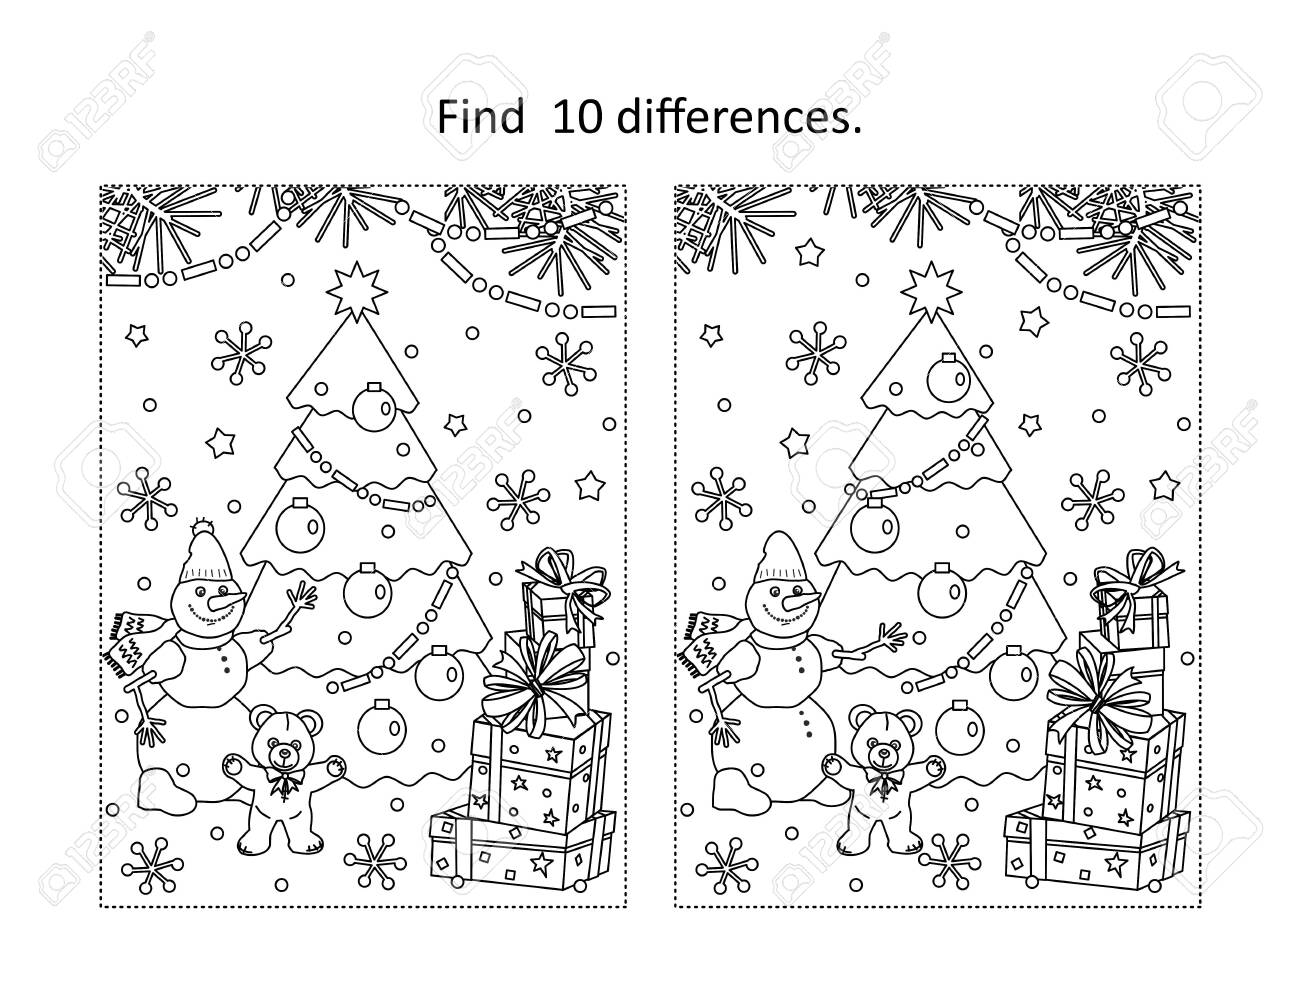 Winter holidays, New Year or Christmas themed find the ten differences picture puzzle and coloring page with christmas tree, tedyy bear, snowman, gift boxes - 158352112